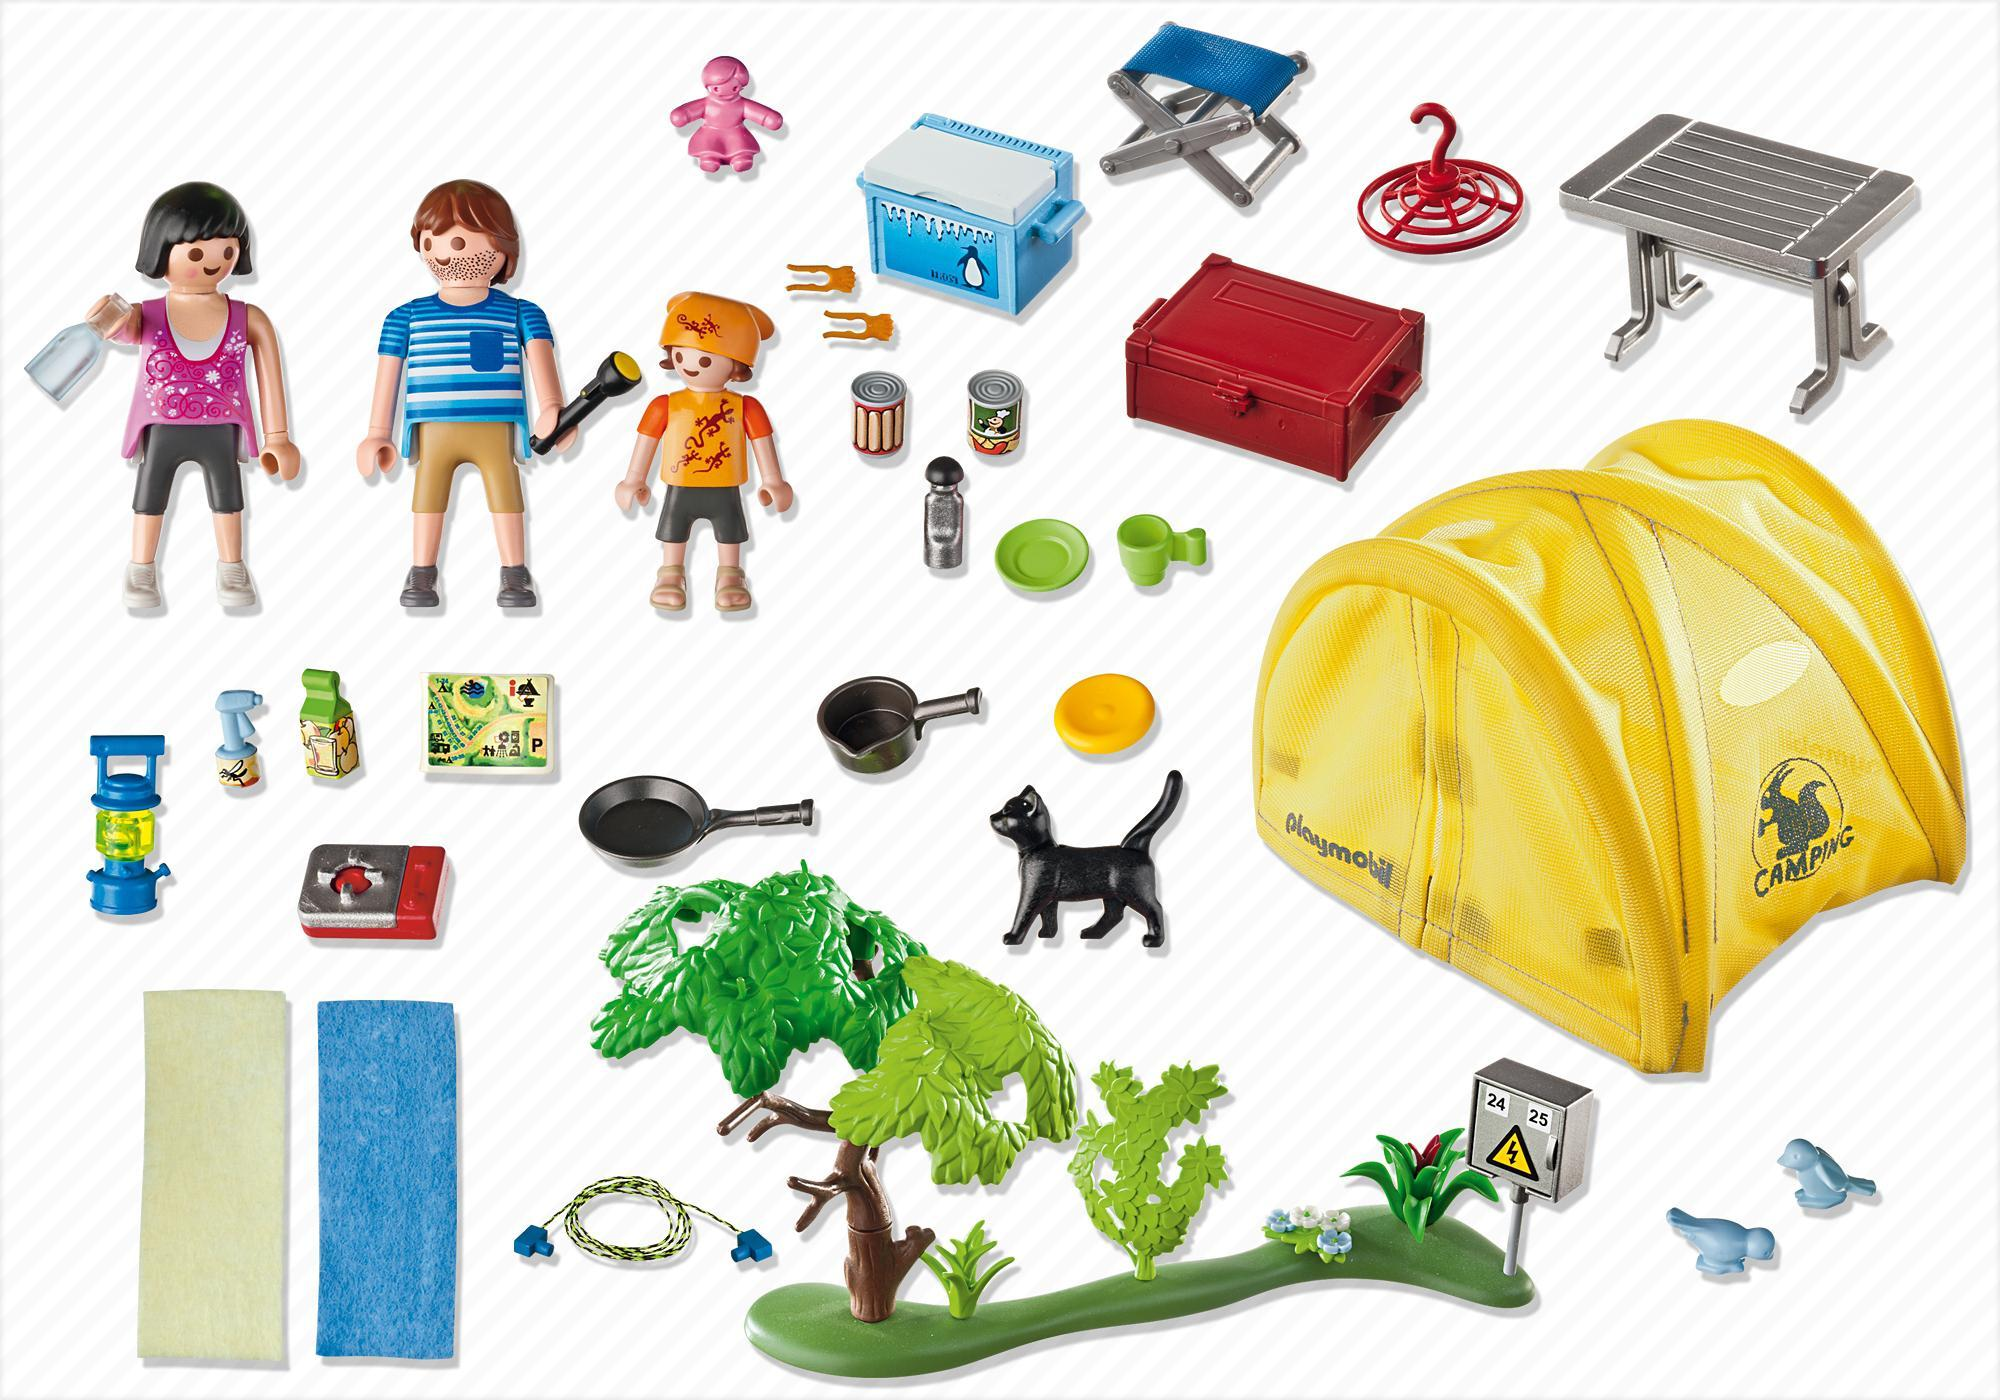 http://media.playmobil.com/i/playmobil/5435_product_box_back/Tienda de Campaña Familiar